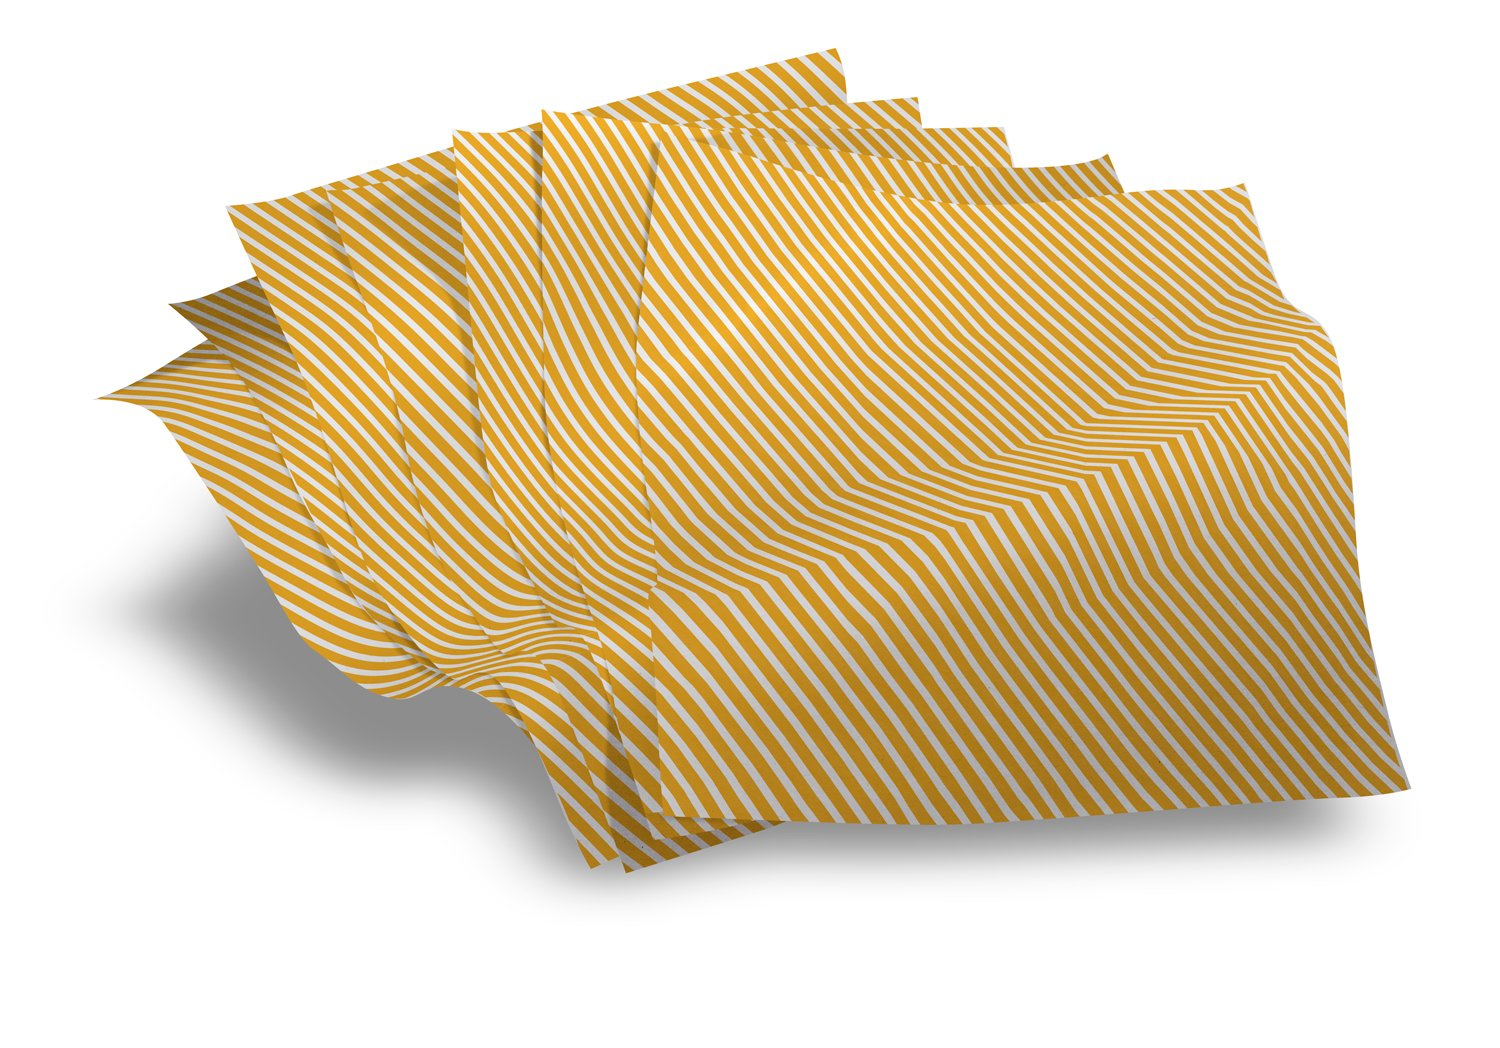 Greaseproof paper for food - Luxury retail wrap Sunshine yellow stripe 250 sheets pack (size 20'' x 13'')